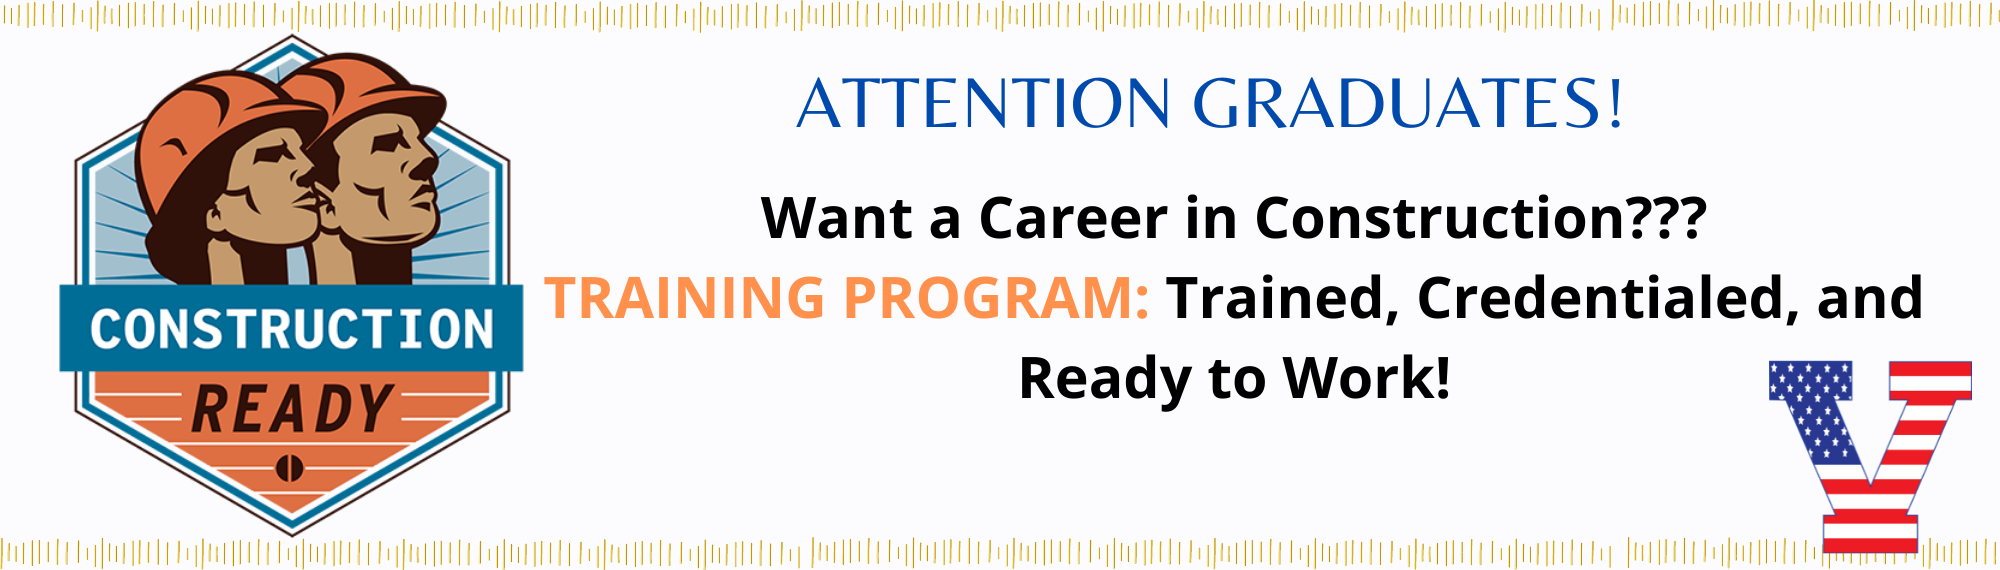 Attention recent graduates - career in construction